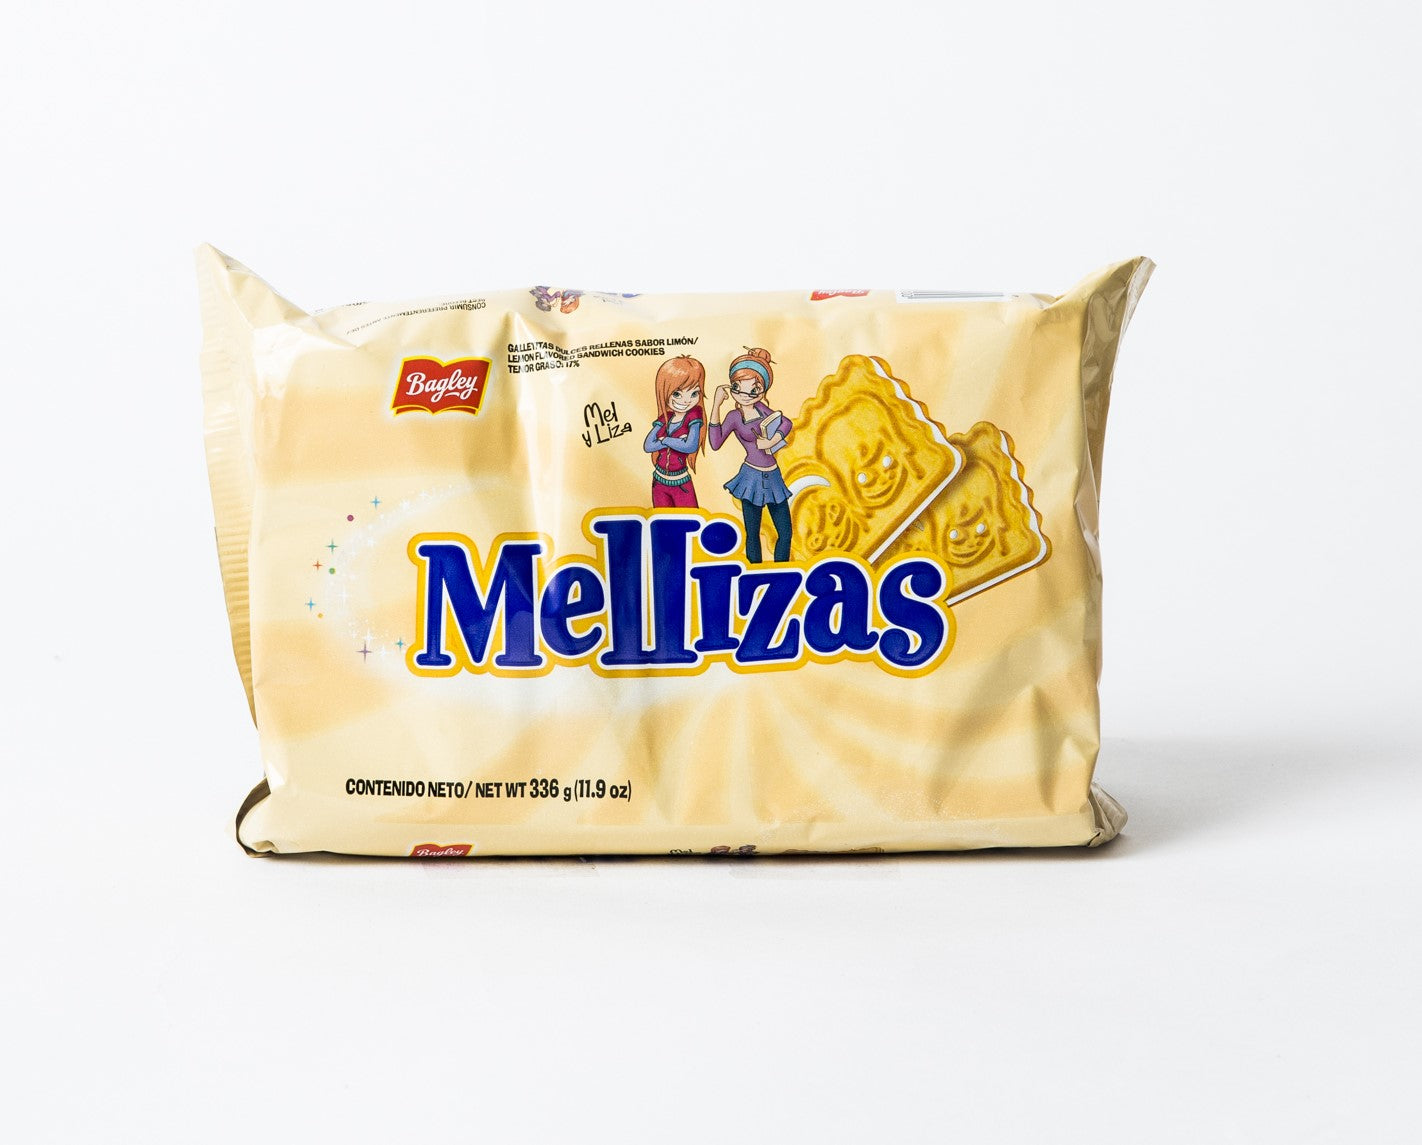 Bagley Mellizas Lemon Flavored Cookies